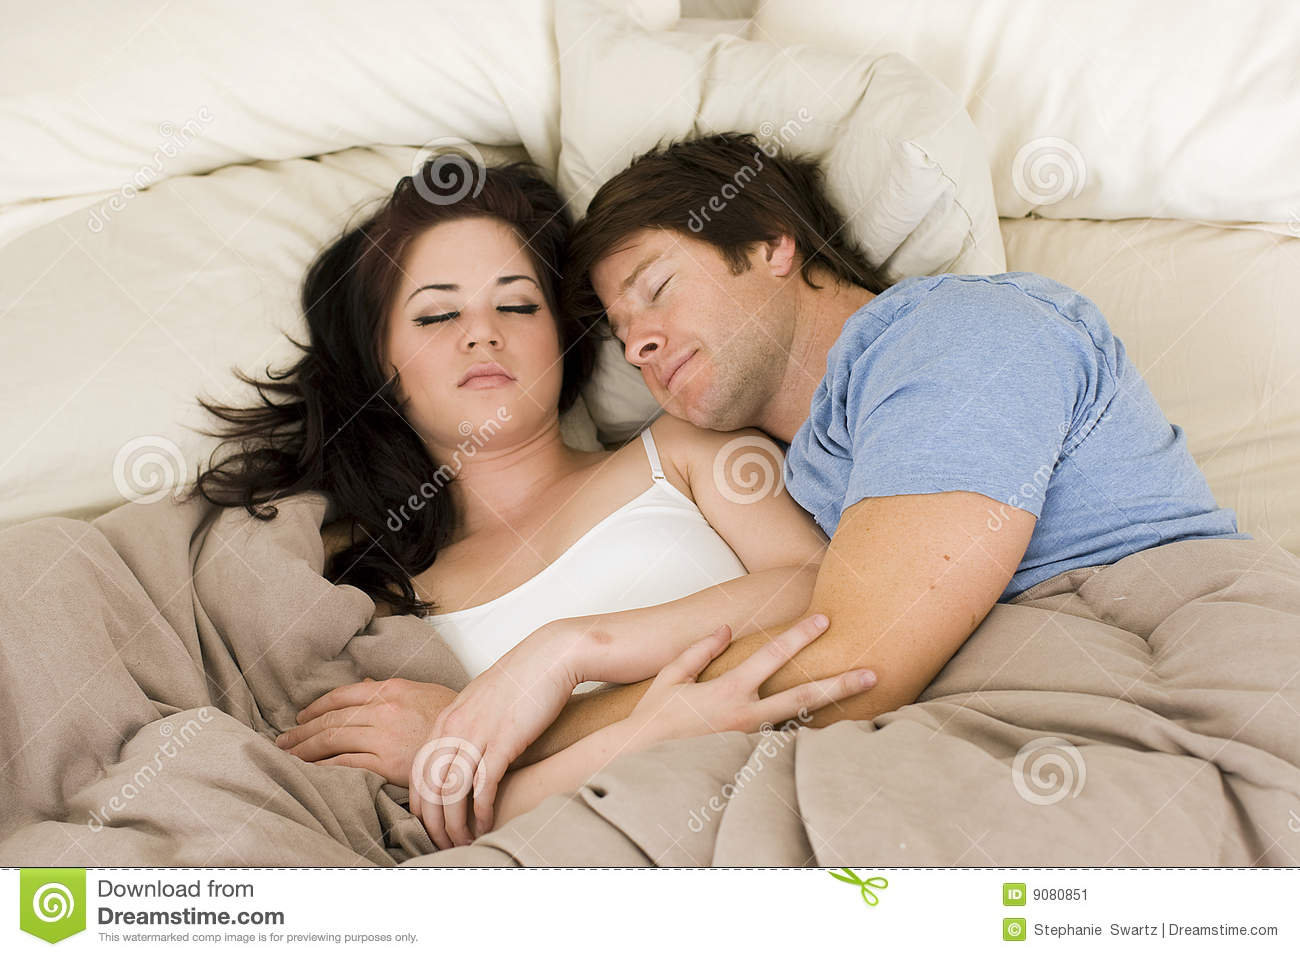 couple in bed stock image image 9080851. Black Bedroom Furniture Sets. Home Design Ideas